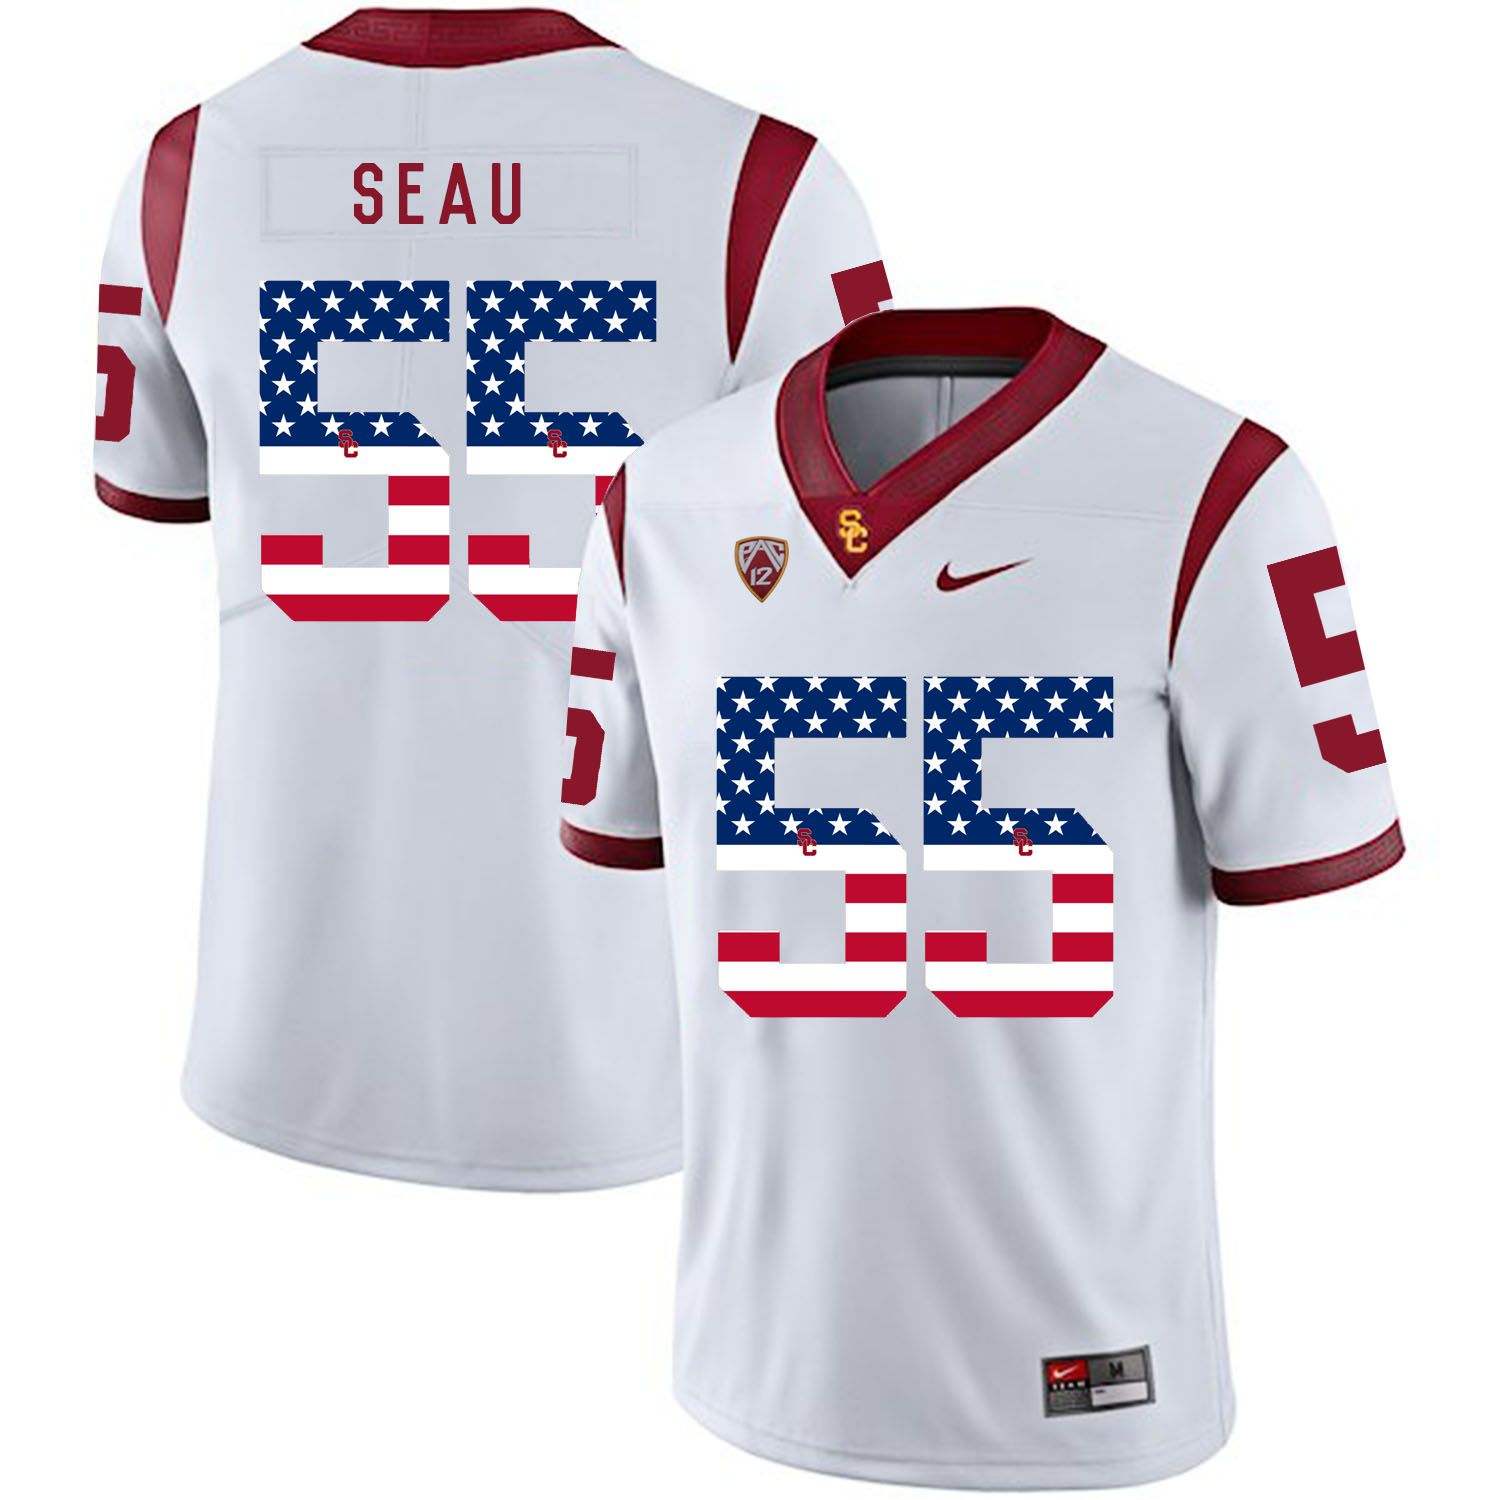 Men USC Trojans 55 Seau White Flag Customized NCAA Jerseys